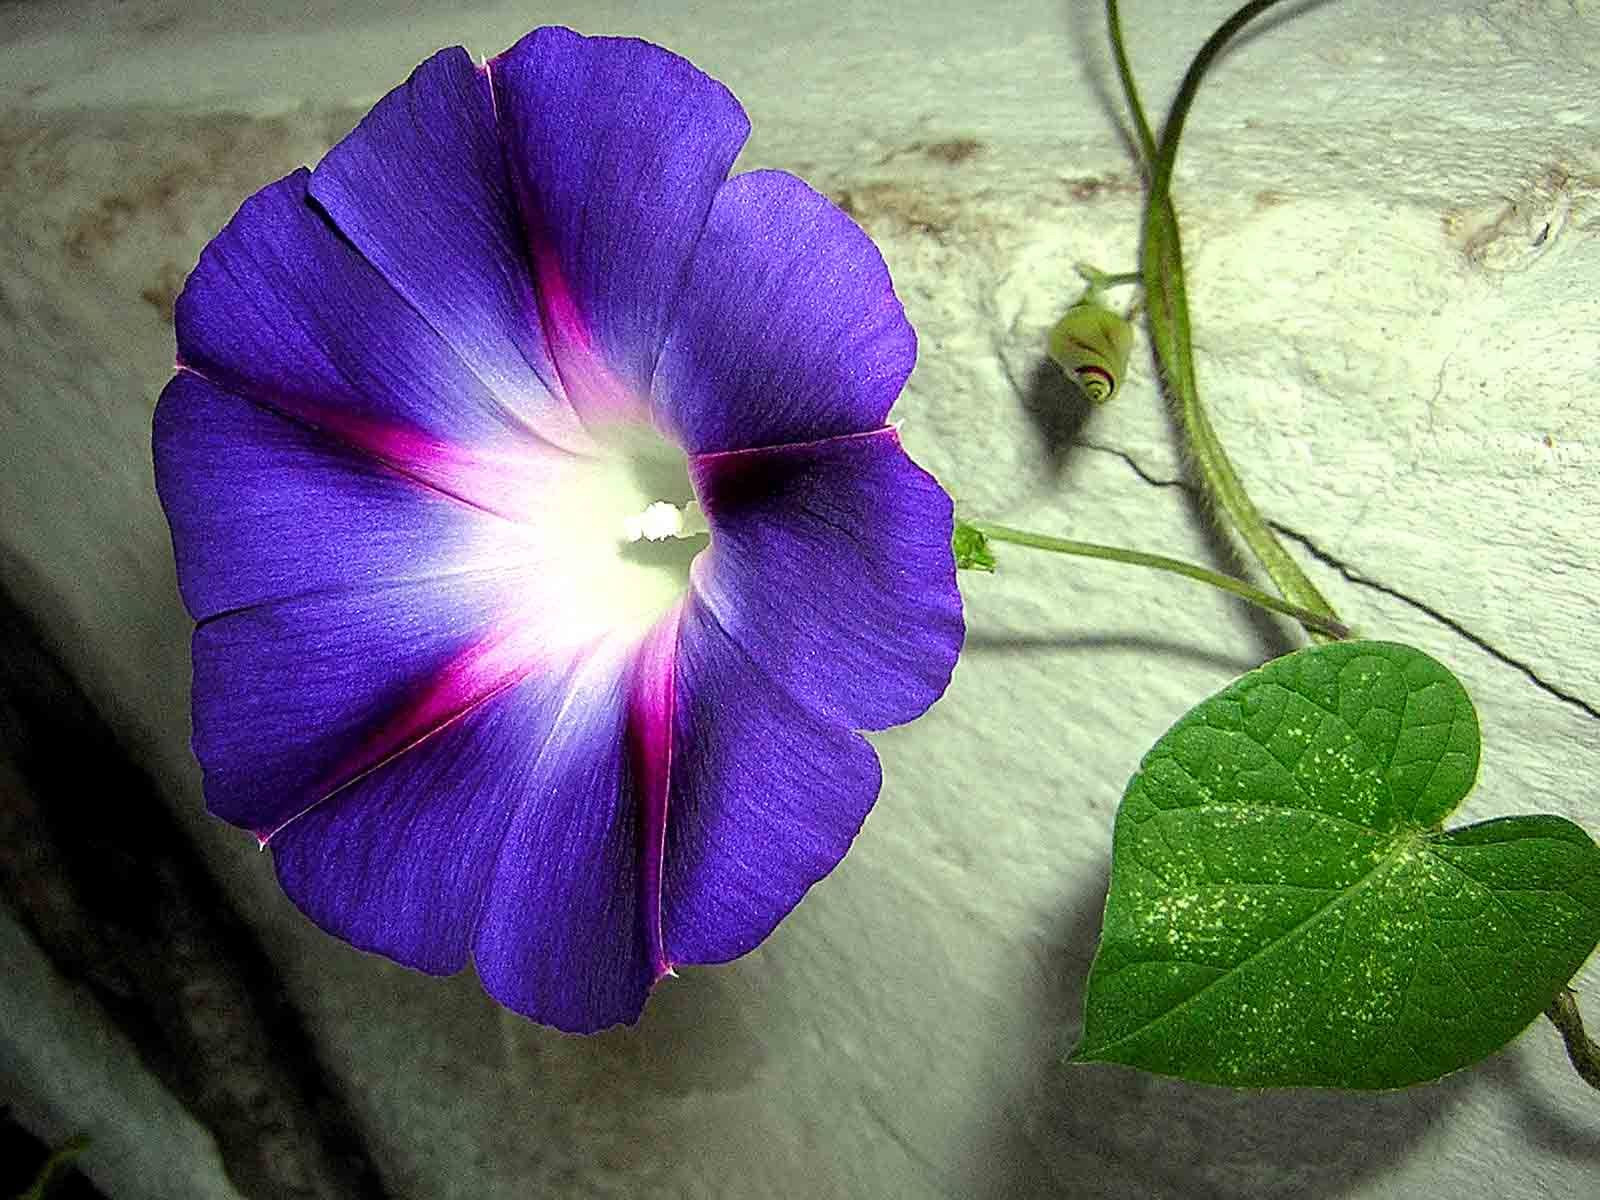 ipomoea morning glory